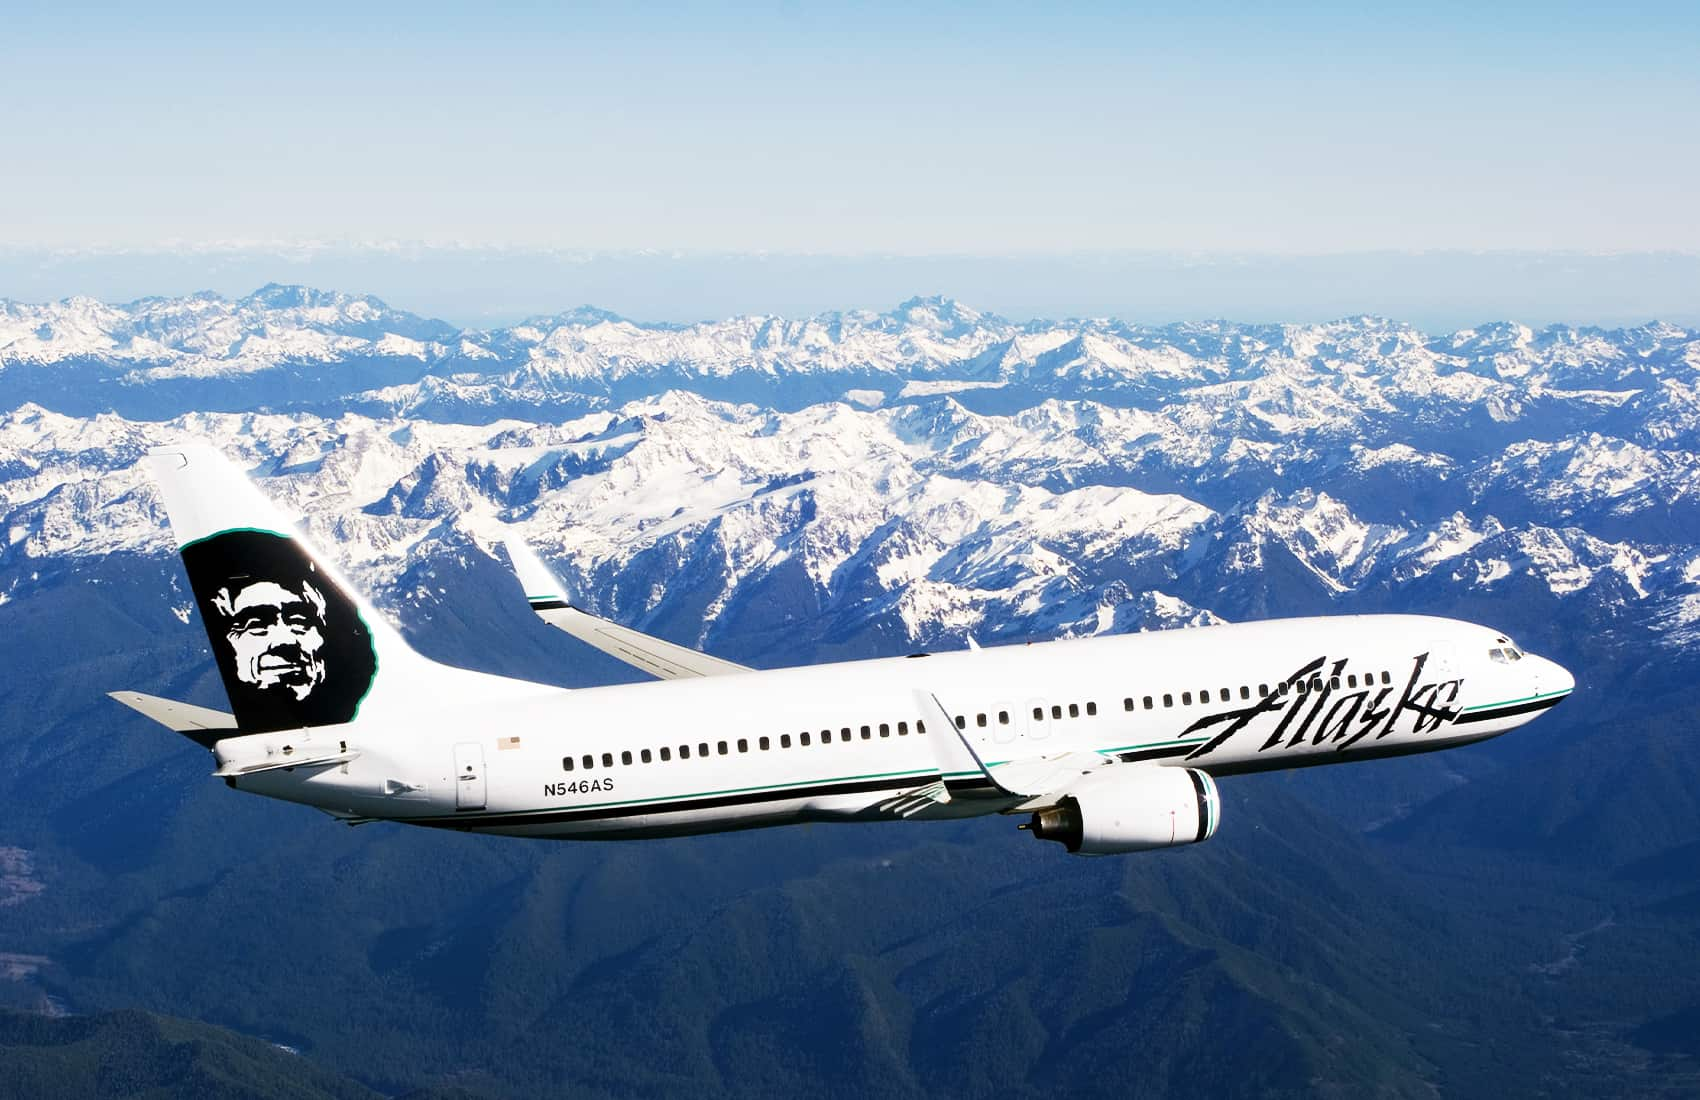 Alaska Air Boeing 737 Airliner